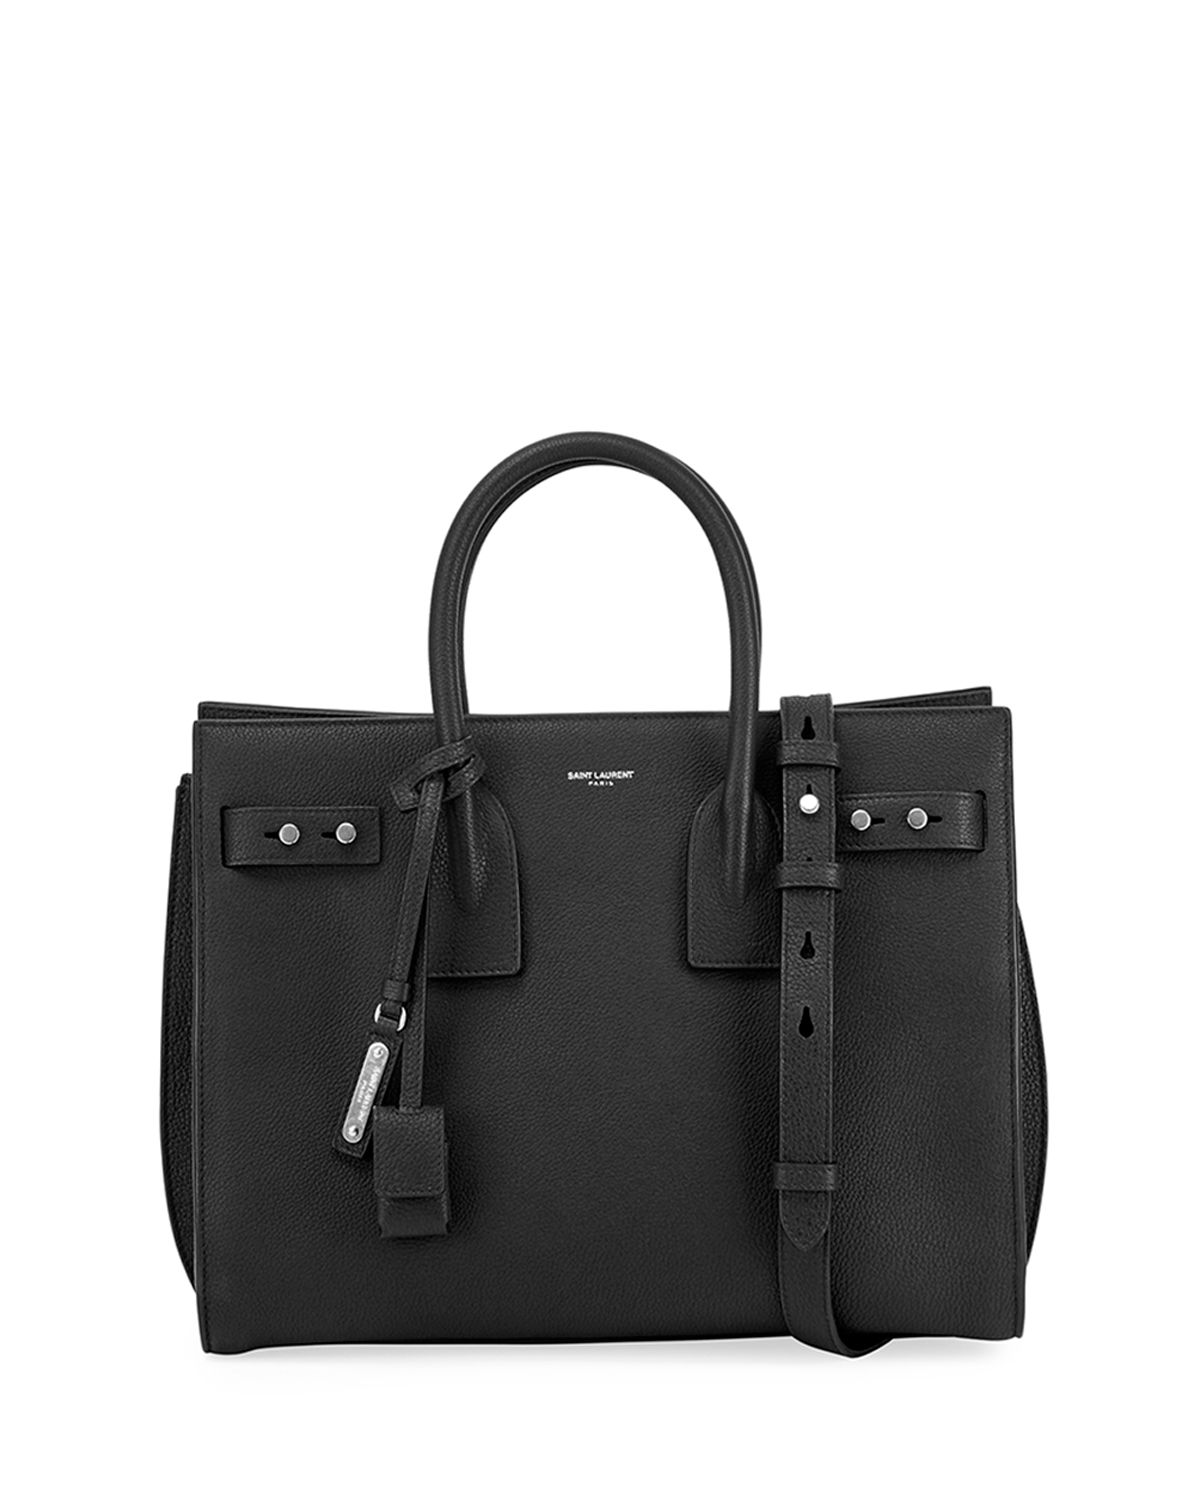 ce959017ac5f Saint Laurent Sac de Jour Small Supple Leather Bag